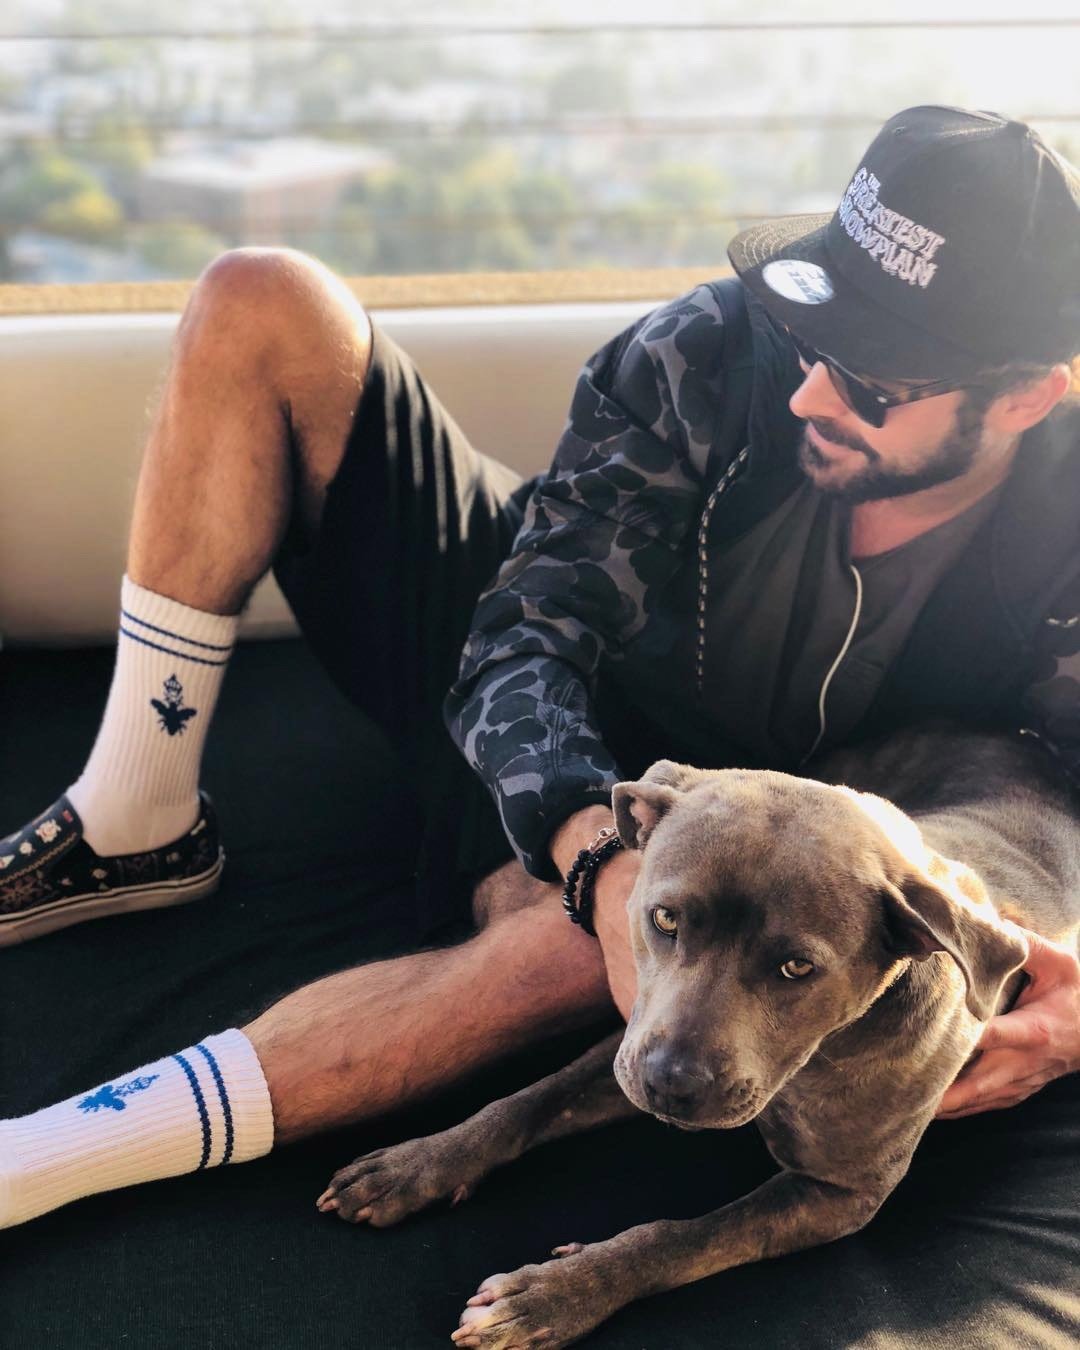 Zac Efron adopts dog that would've been euthanized